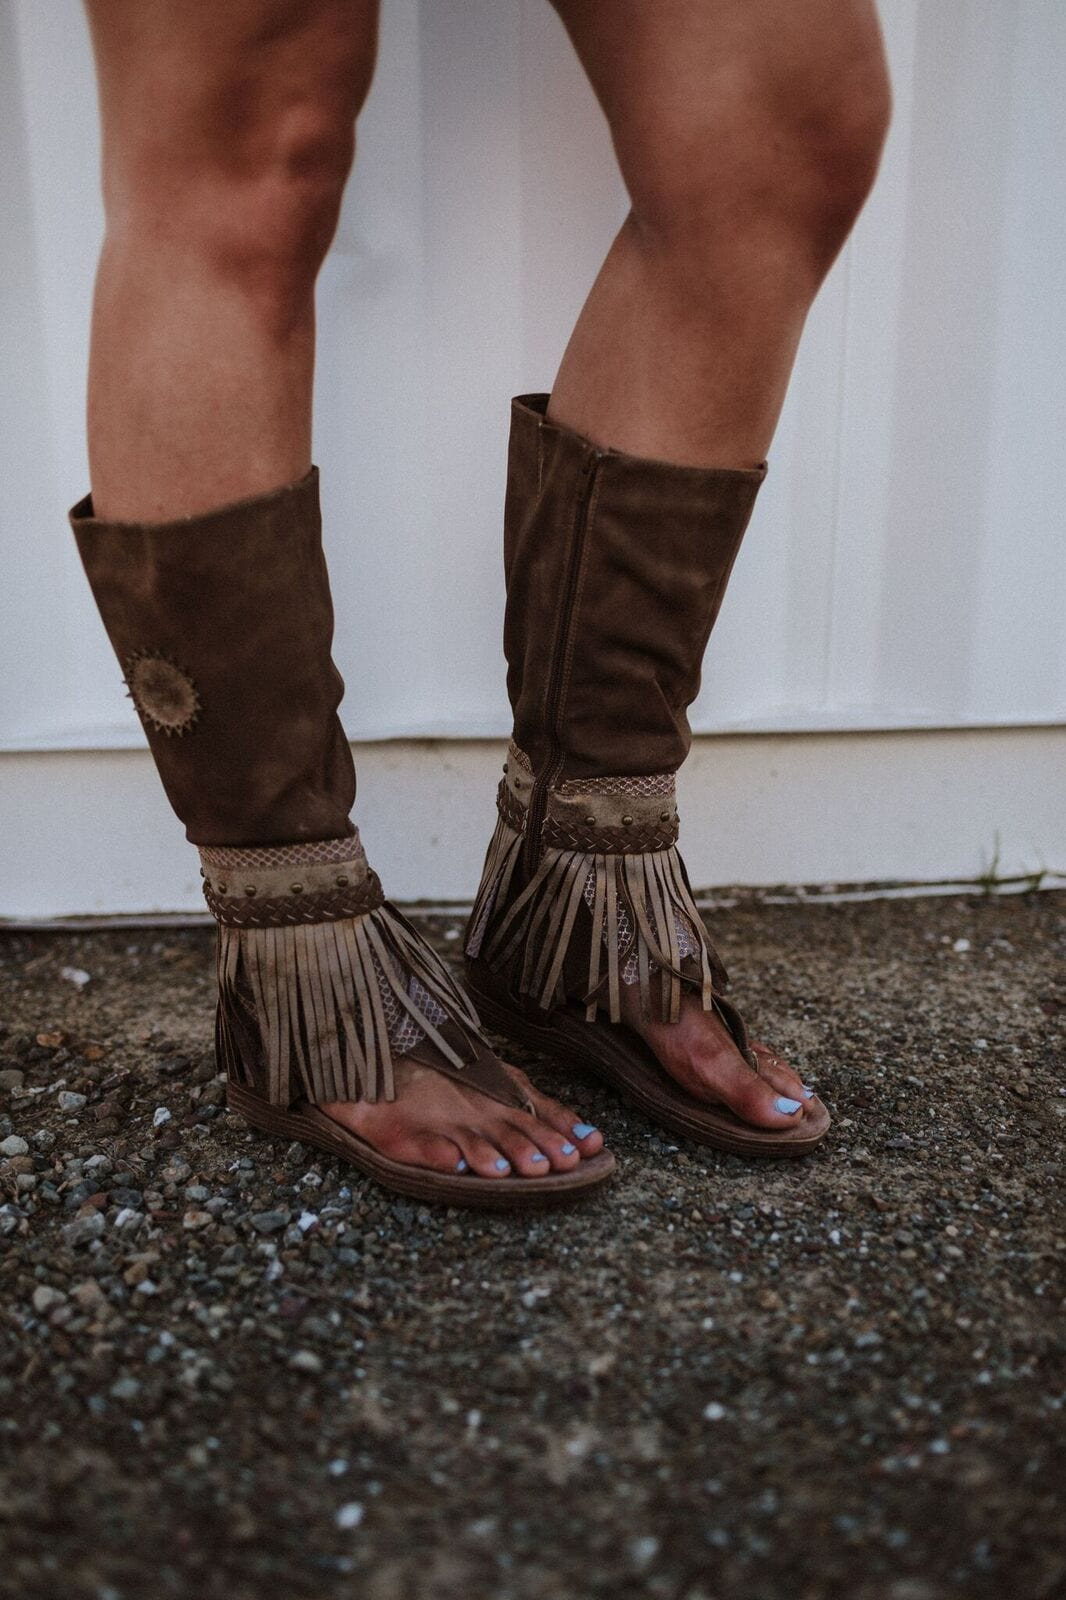 Ibiza Gladiator Fringe Boot Sandals on MOdel